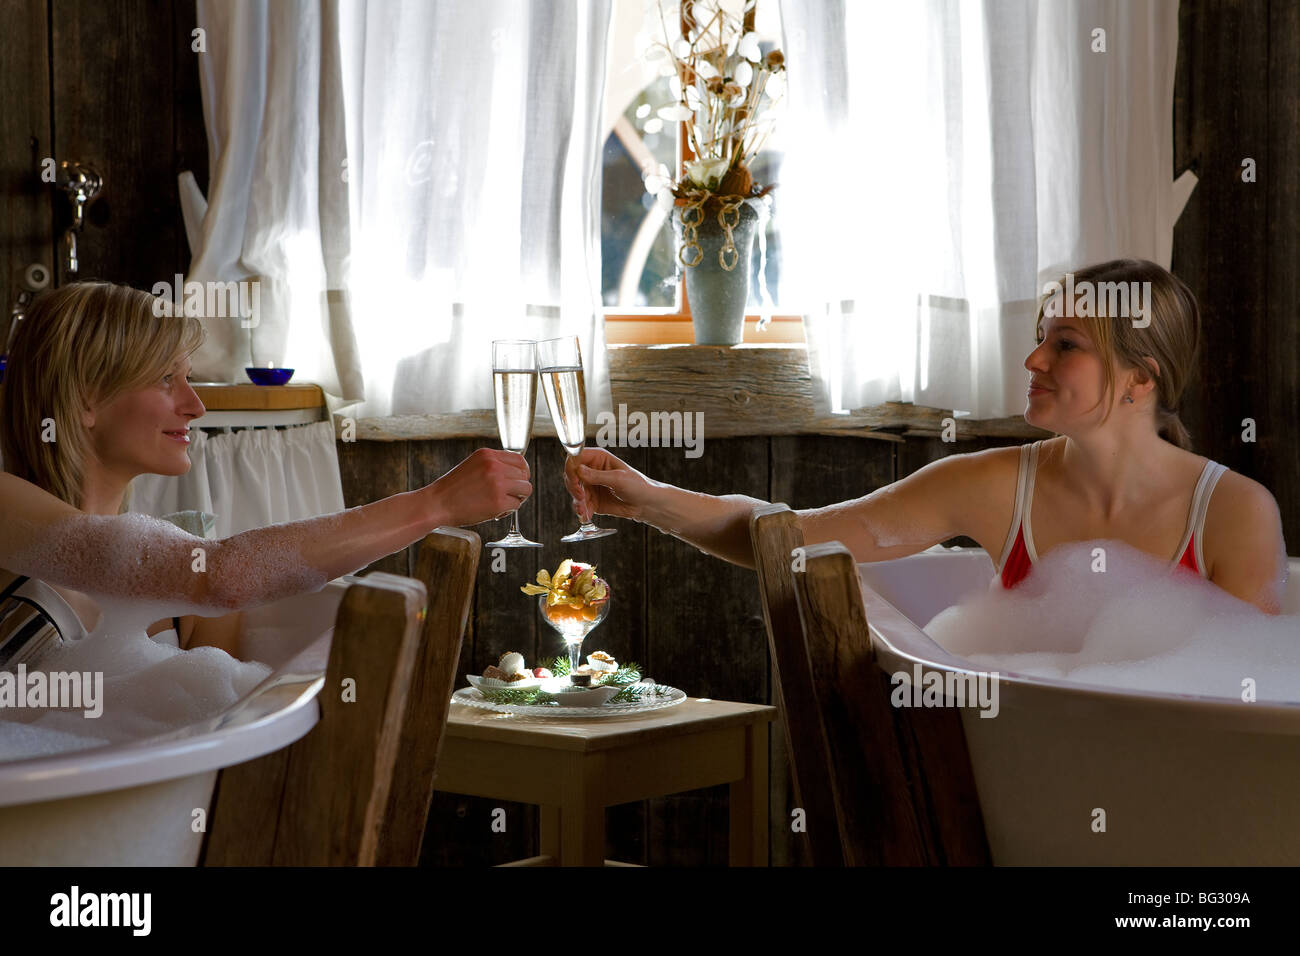 Europe, Italy, Alto Adige, Dolomiti, spa, treatments, bath, relax, wellness, sparkling wine, girls - Stock Image